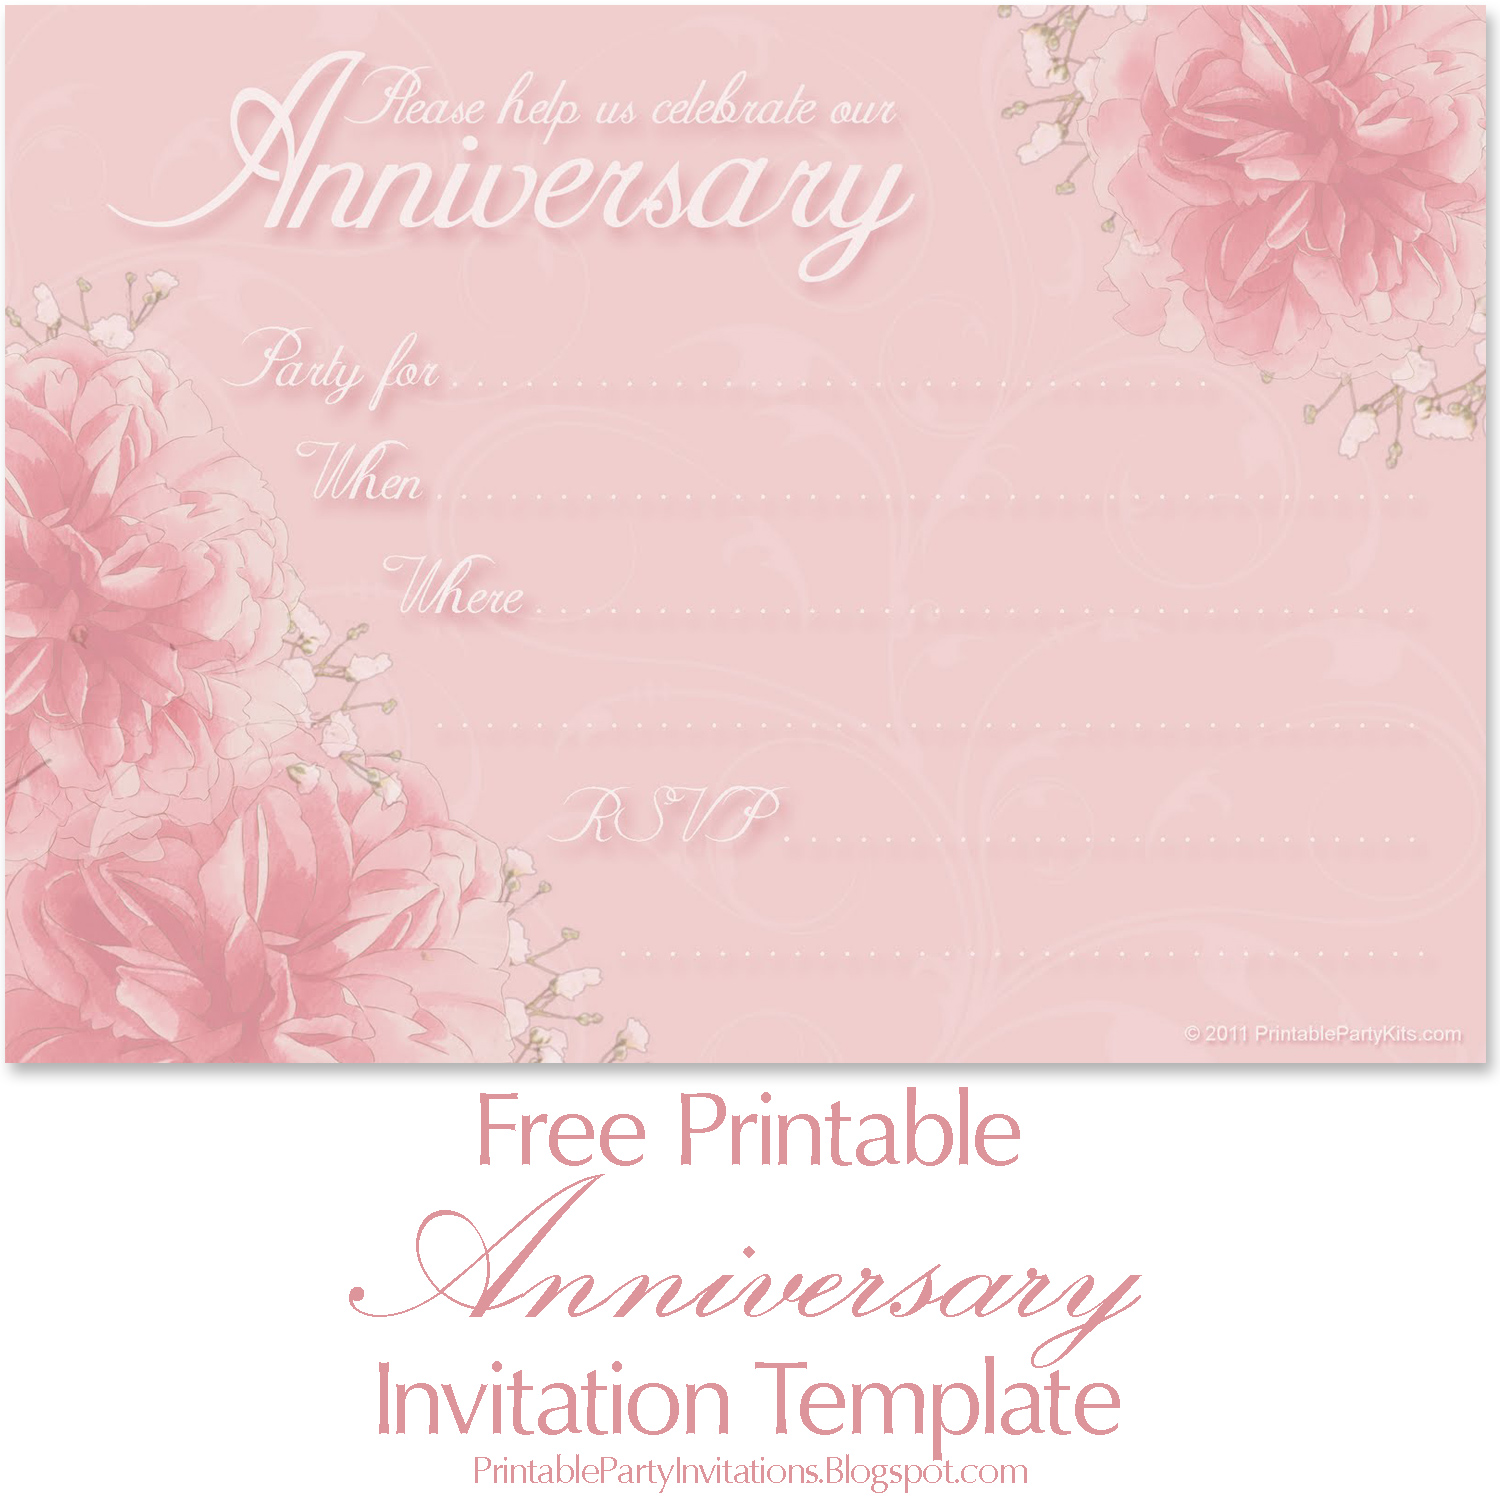 It's just an image of Free Printable Anniversary Invitations with regard to invitation template